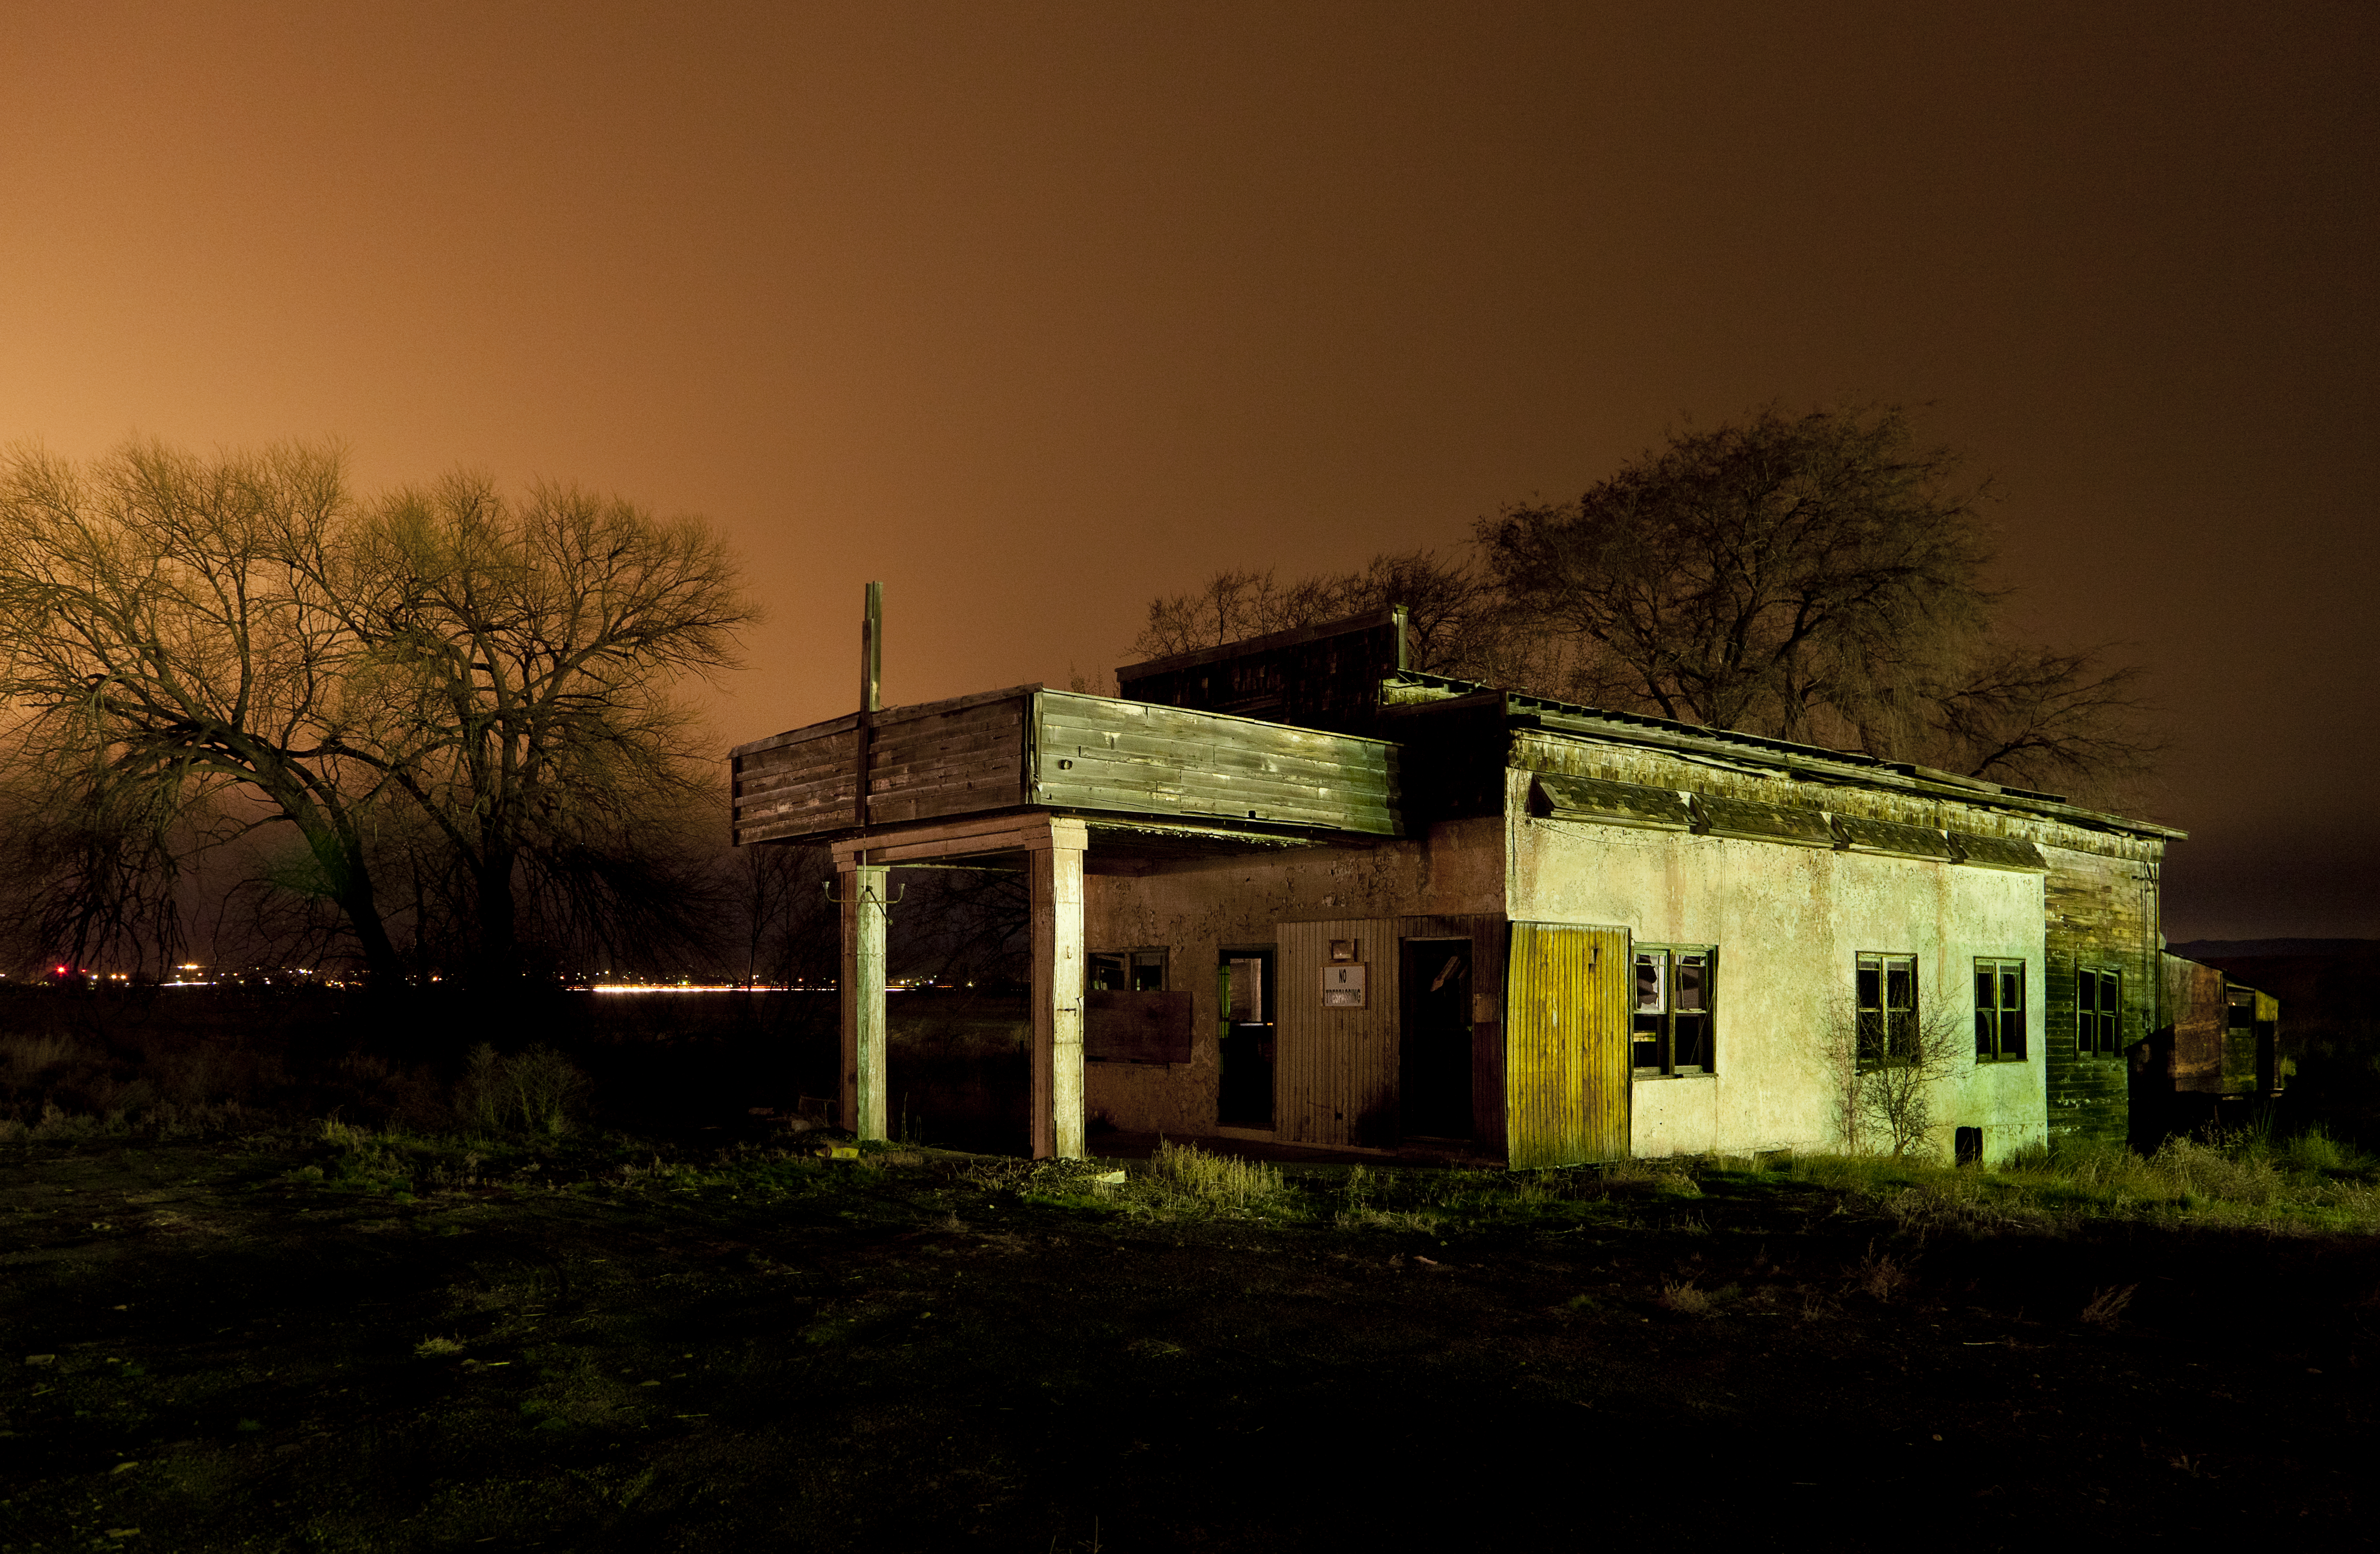 After Dark - Abandoned Gas Station